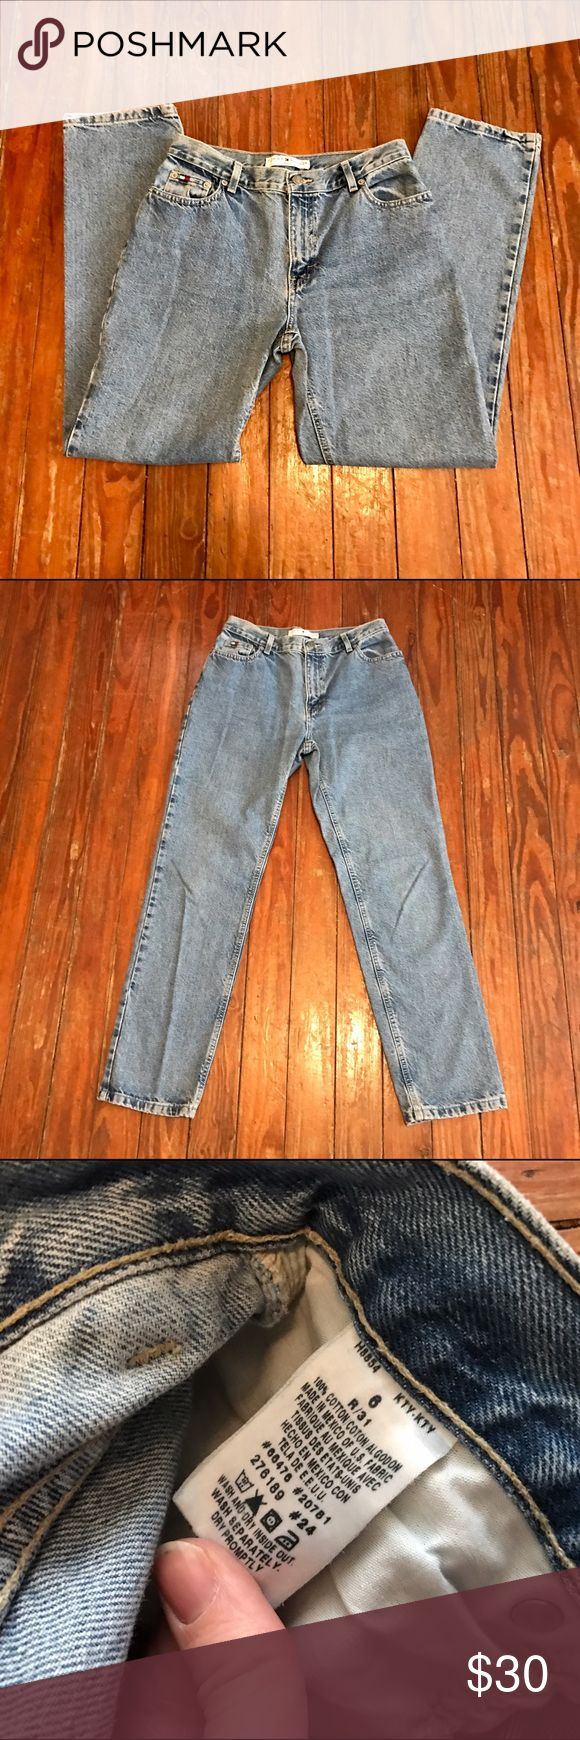 Vintage Tommy Hilfiger High Waisted Jeans size 6 Thank you for looking at my listing!! This listing is for a pair of Vintage Tommy Hilfiger High Waisted Jeans size 6, these jeans are in perfect condition!! If you have any questions about this item feel free to contact me!! Tommy Hilfiger Jeans Straight Leg